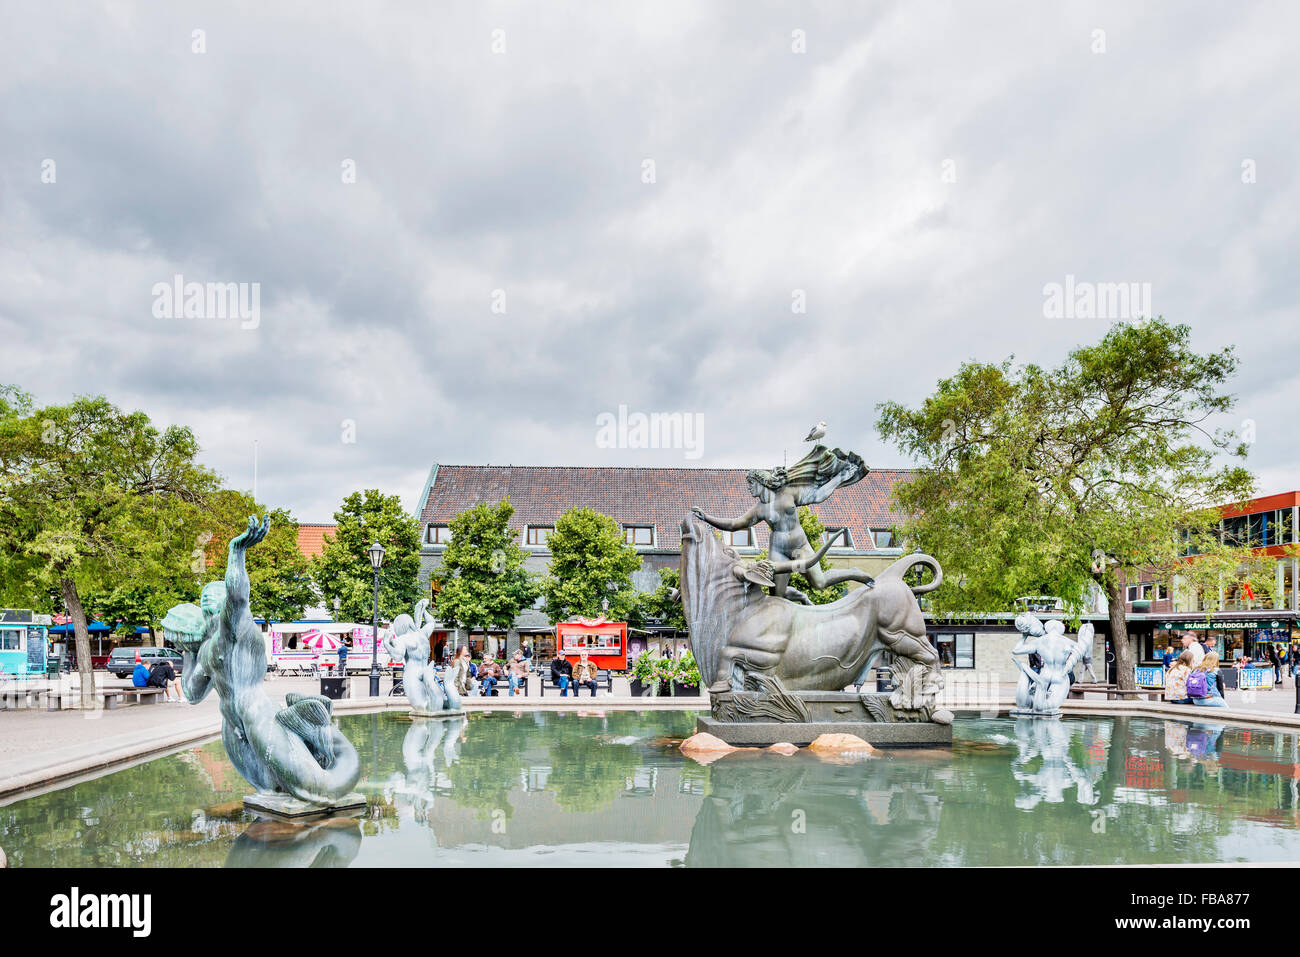 Sweden, Halland, Halmstad, Storatorg, Europa and Bull statue in fountain with buildings in background - Stock Image